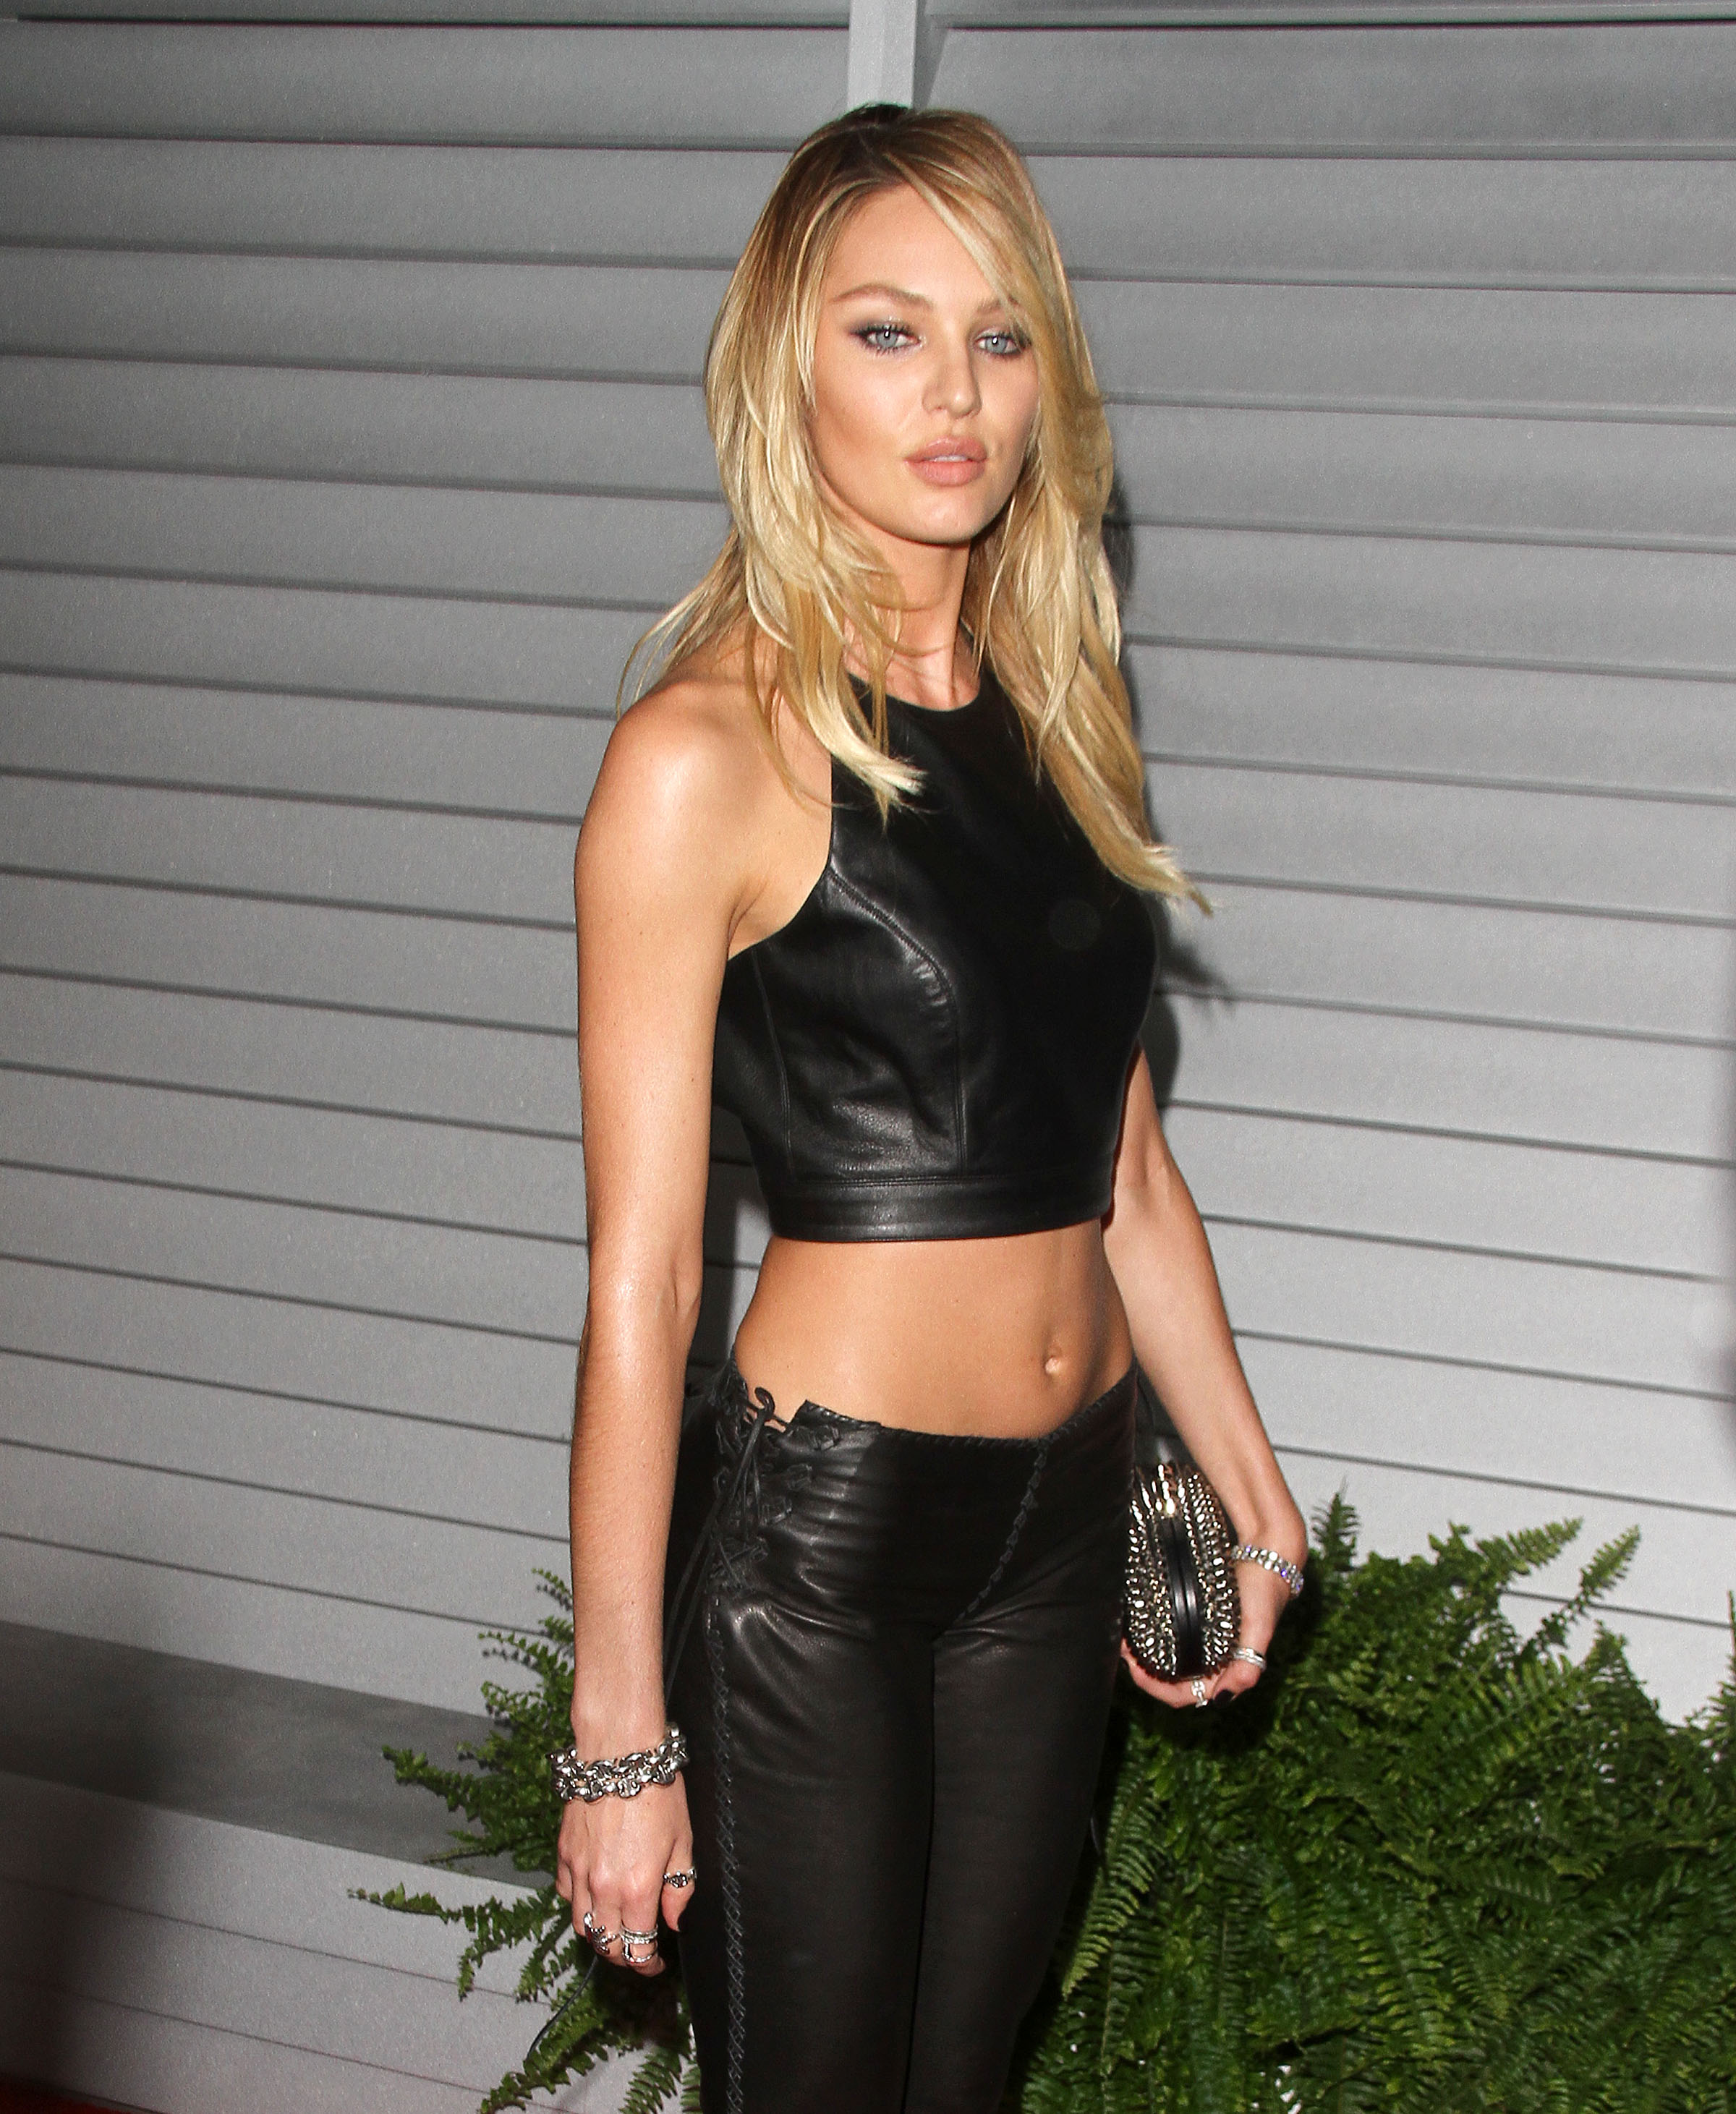 Candice Swanepoel at The Maxim Hot 100 Women Of 2014 Celebration in LA   183267 ...